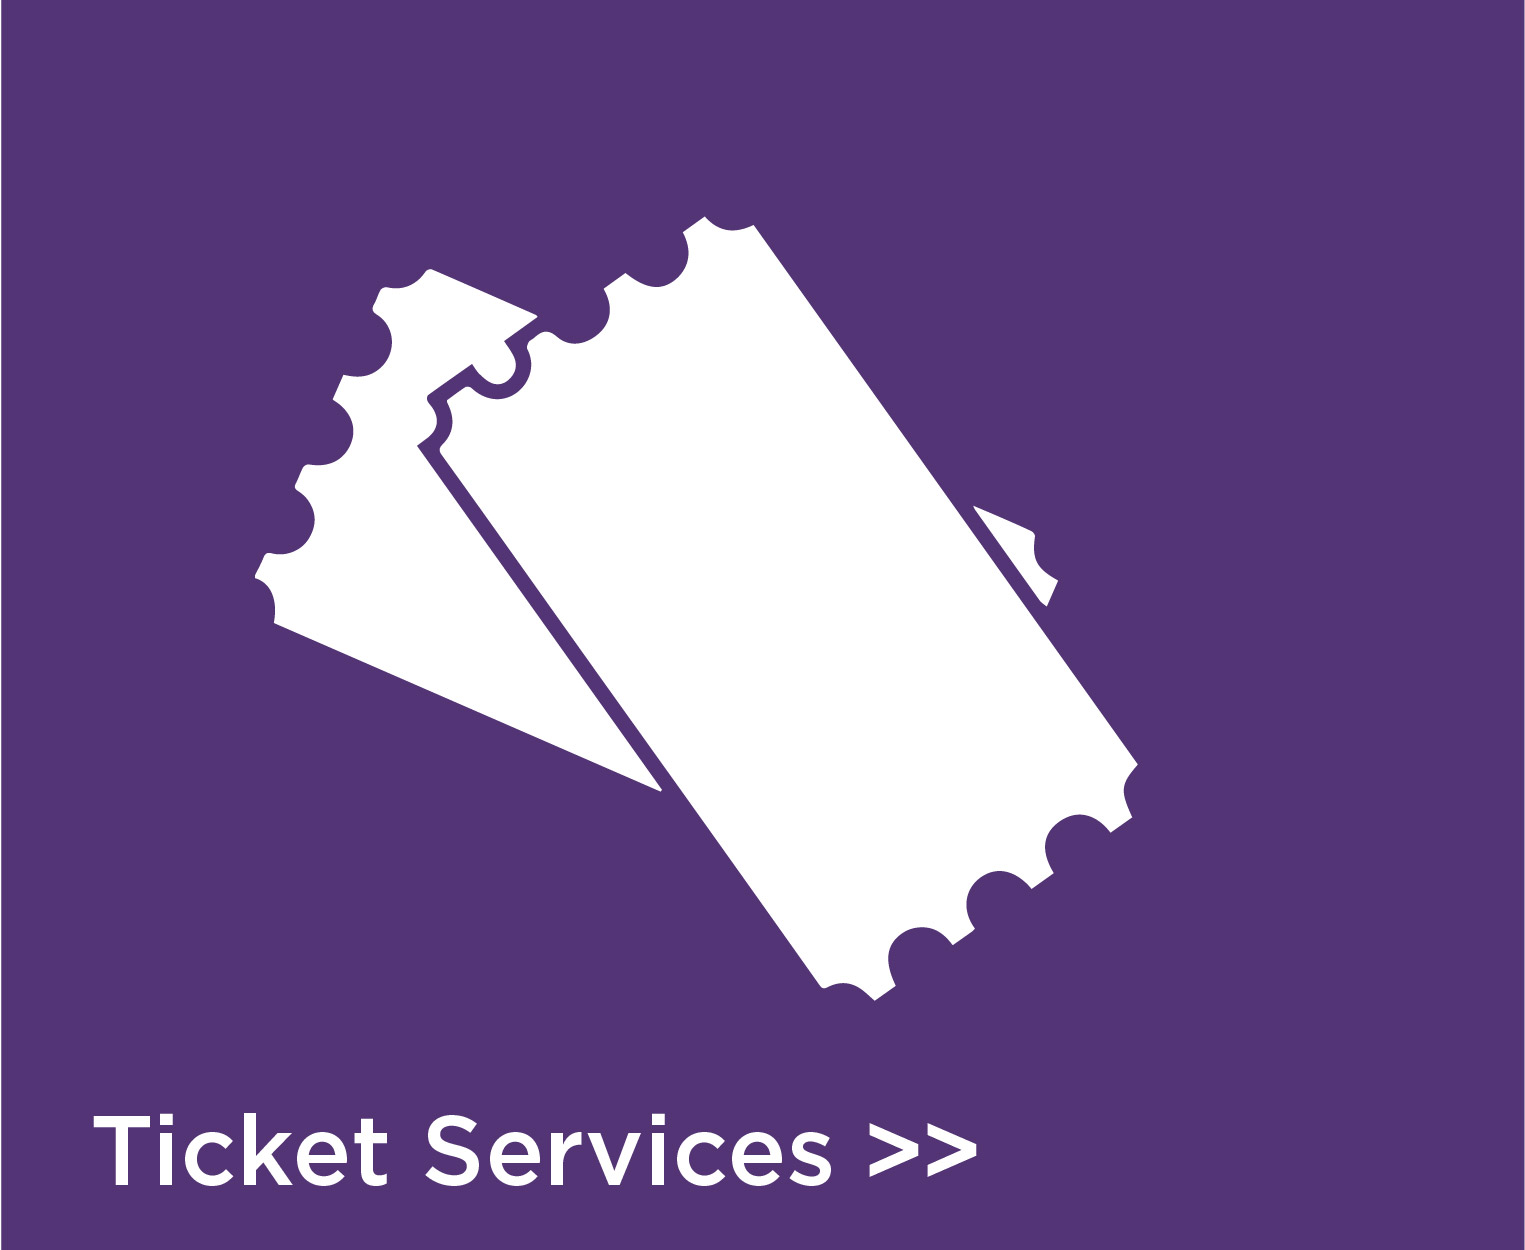 UC Ticket Services for events at UW-Whitewater